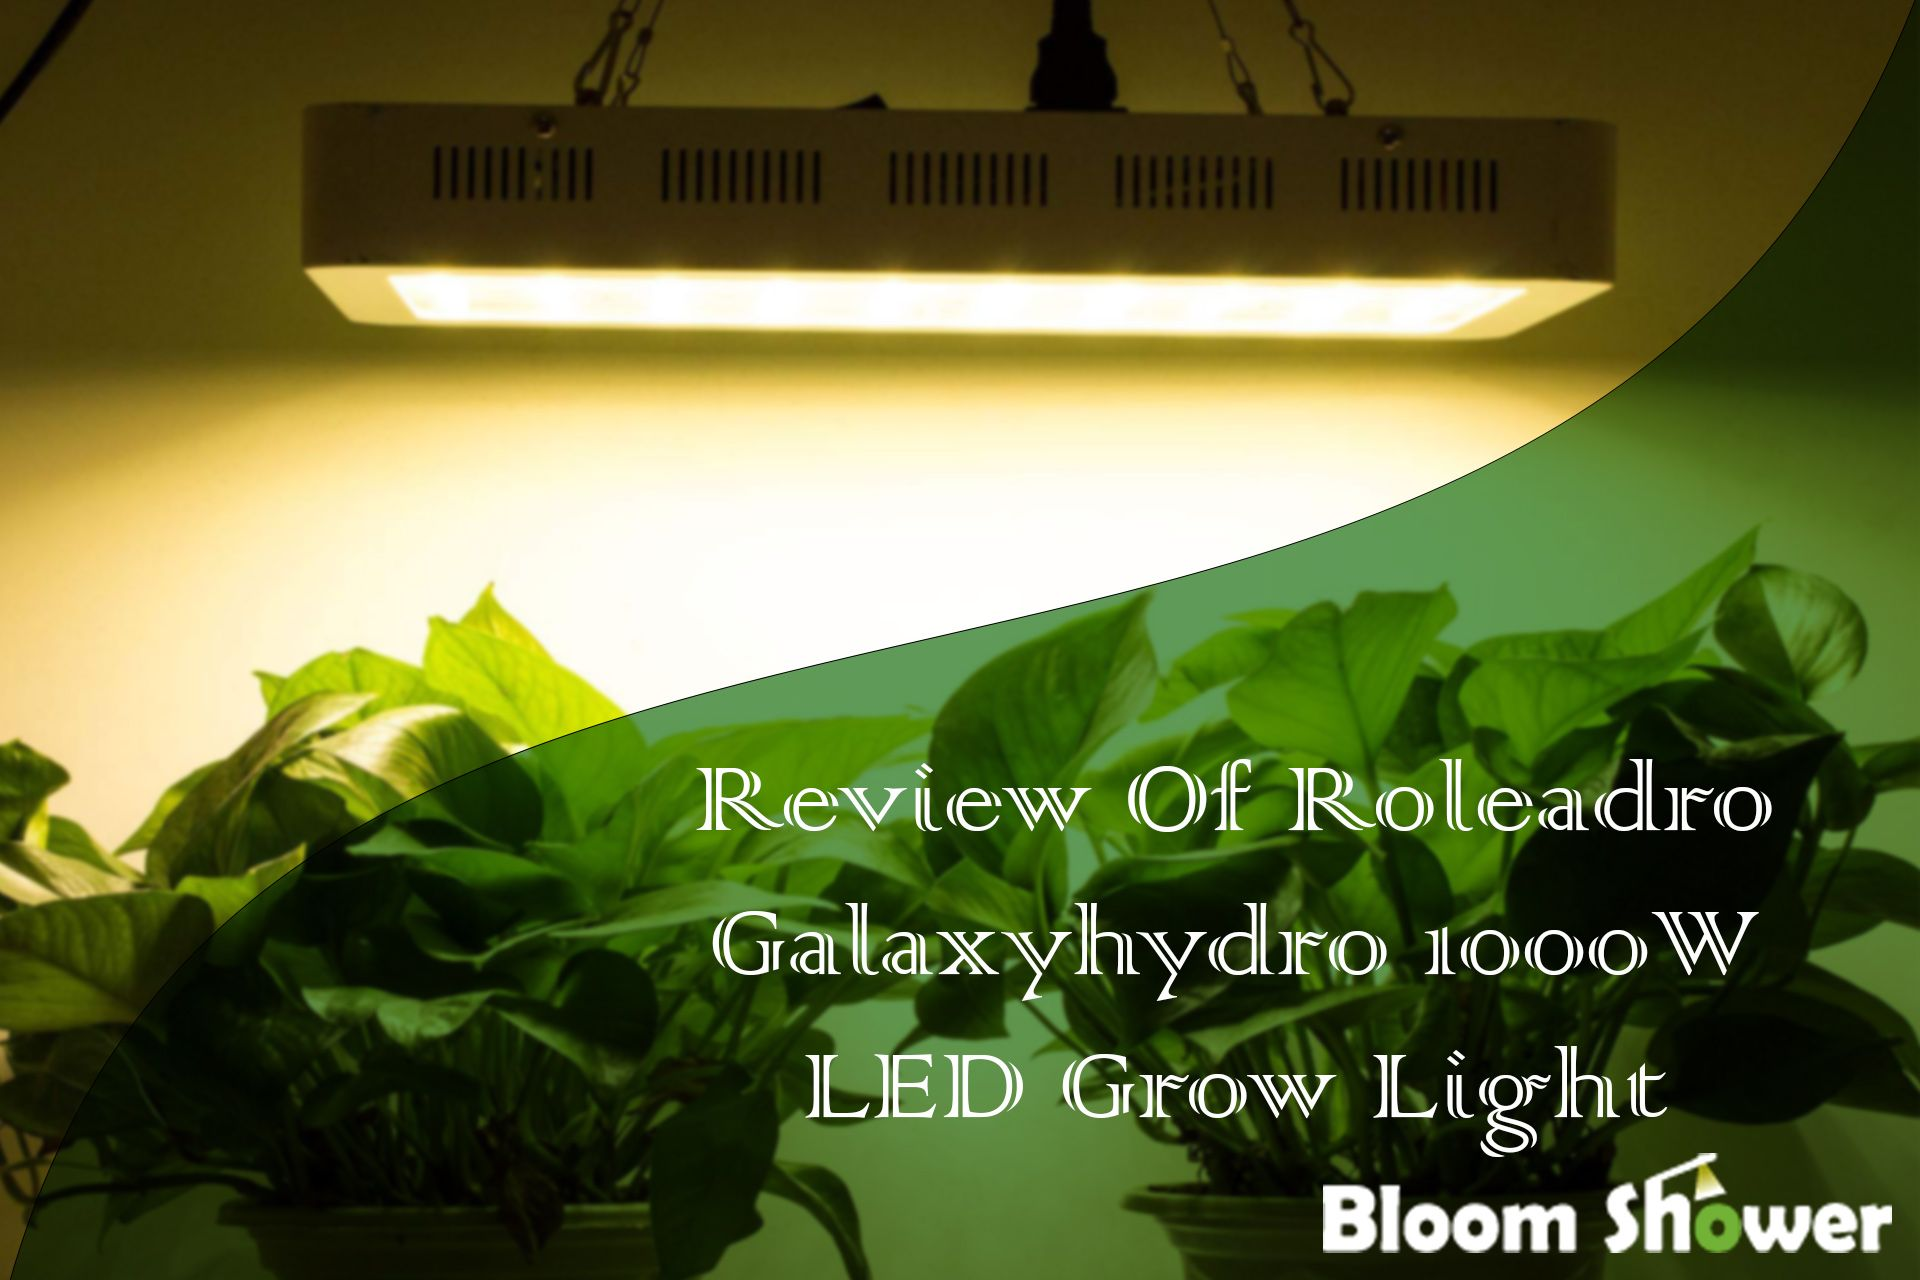 Roleadro Galaxyhydro 1000w Review What To Know Before Buying Led Grow Lights Grow Lights Best Grow Lights